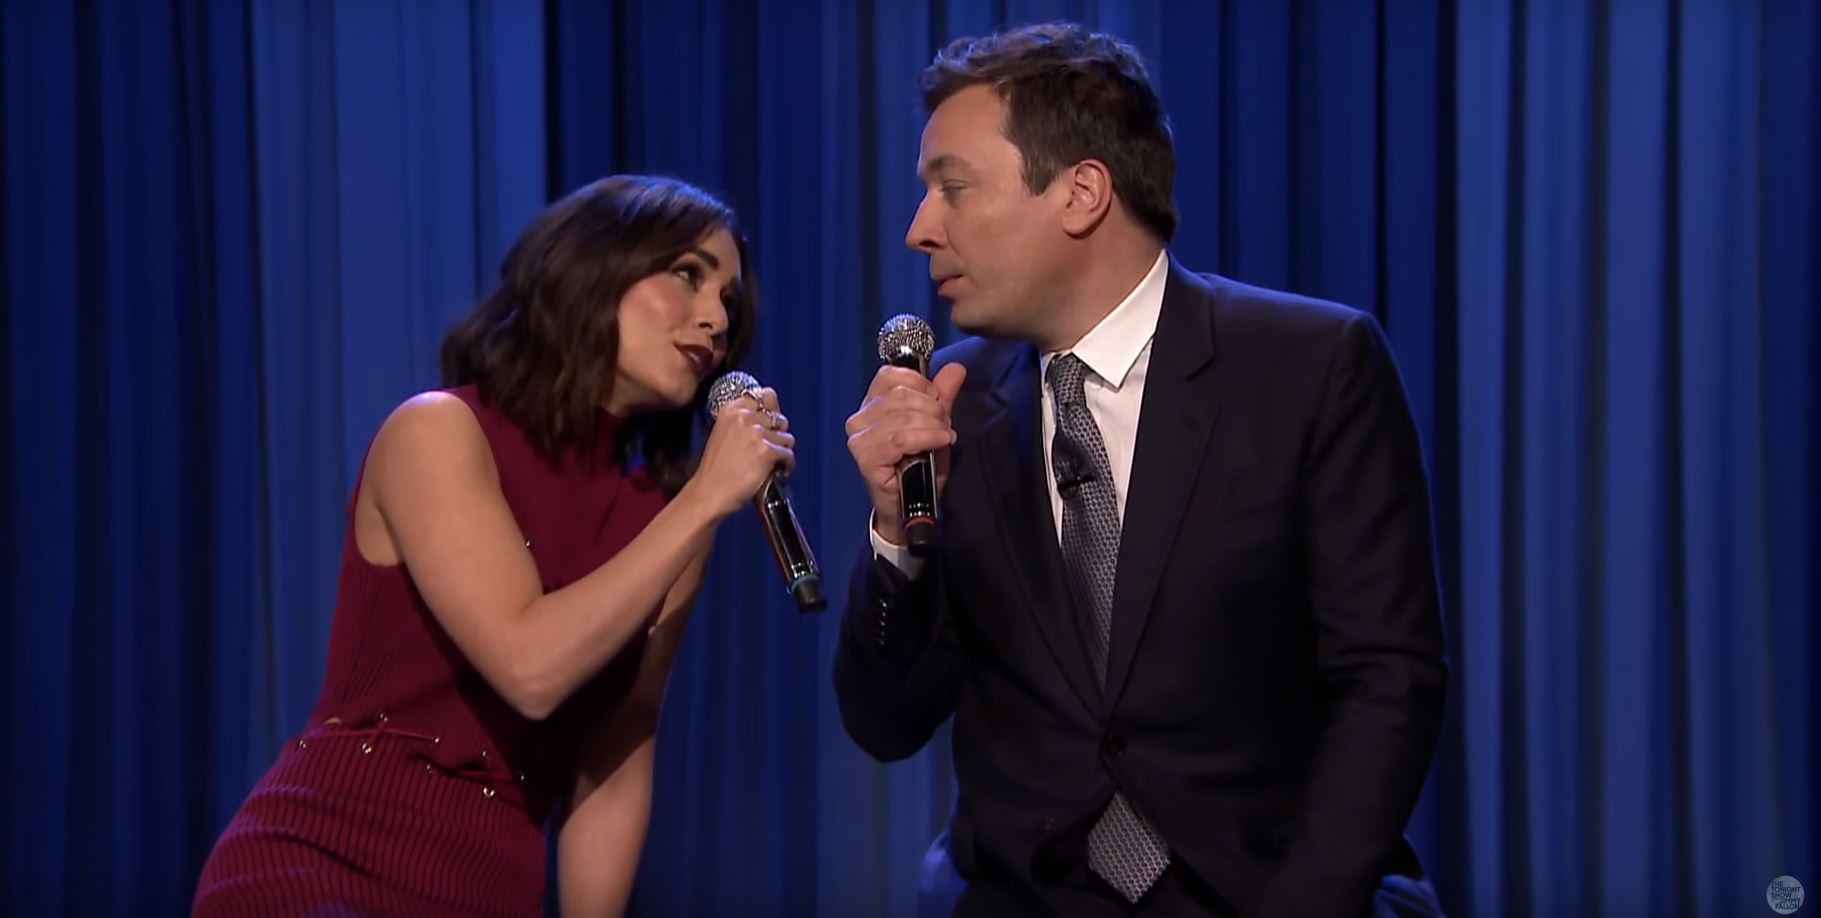 Vanessa Hudgens and Jimmy Fallon recreate the Friends theme song